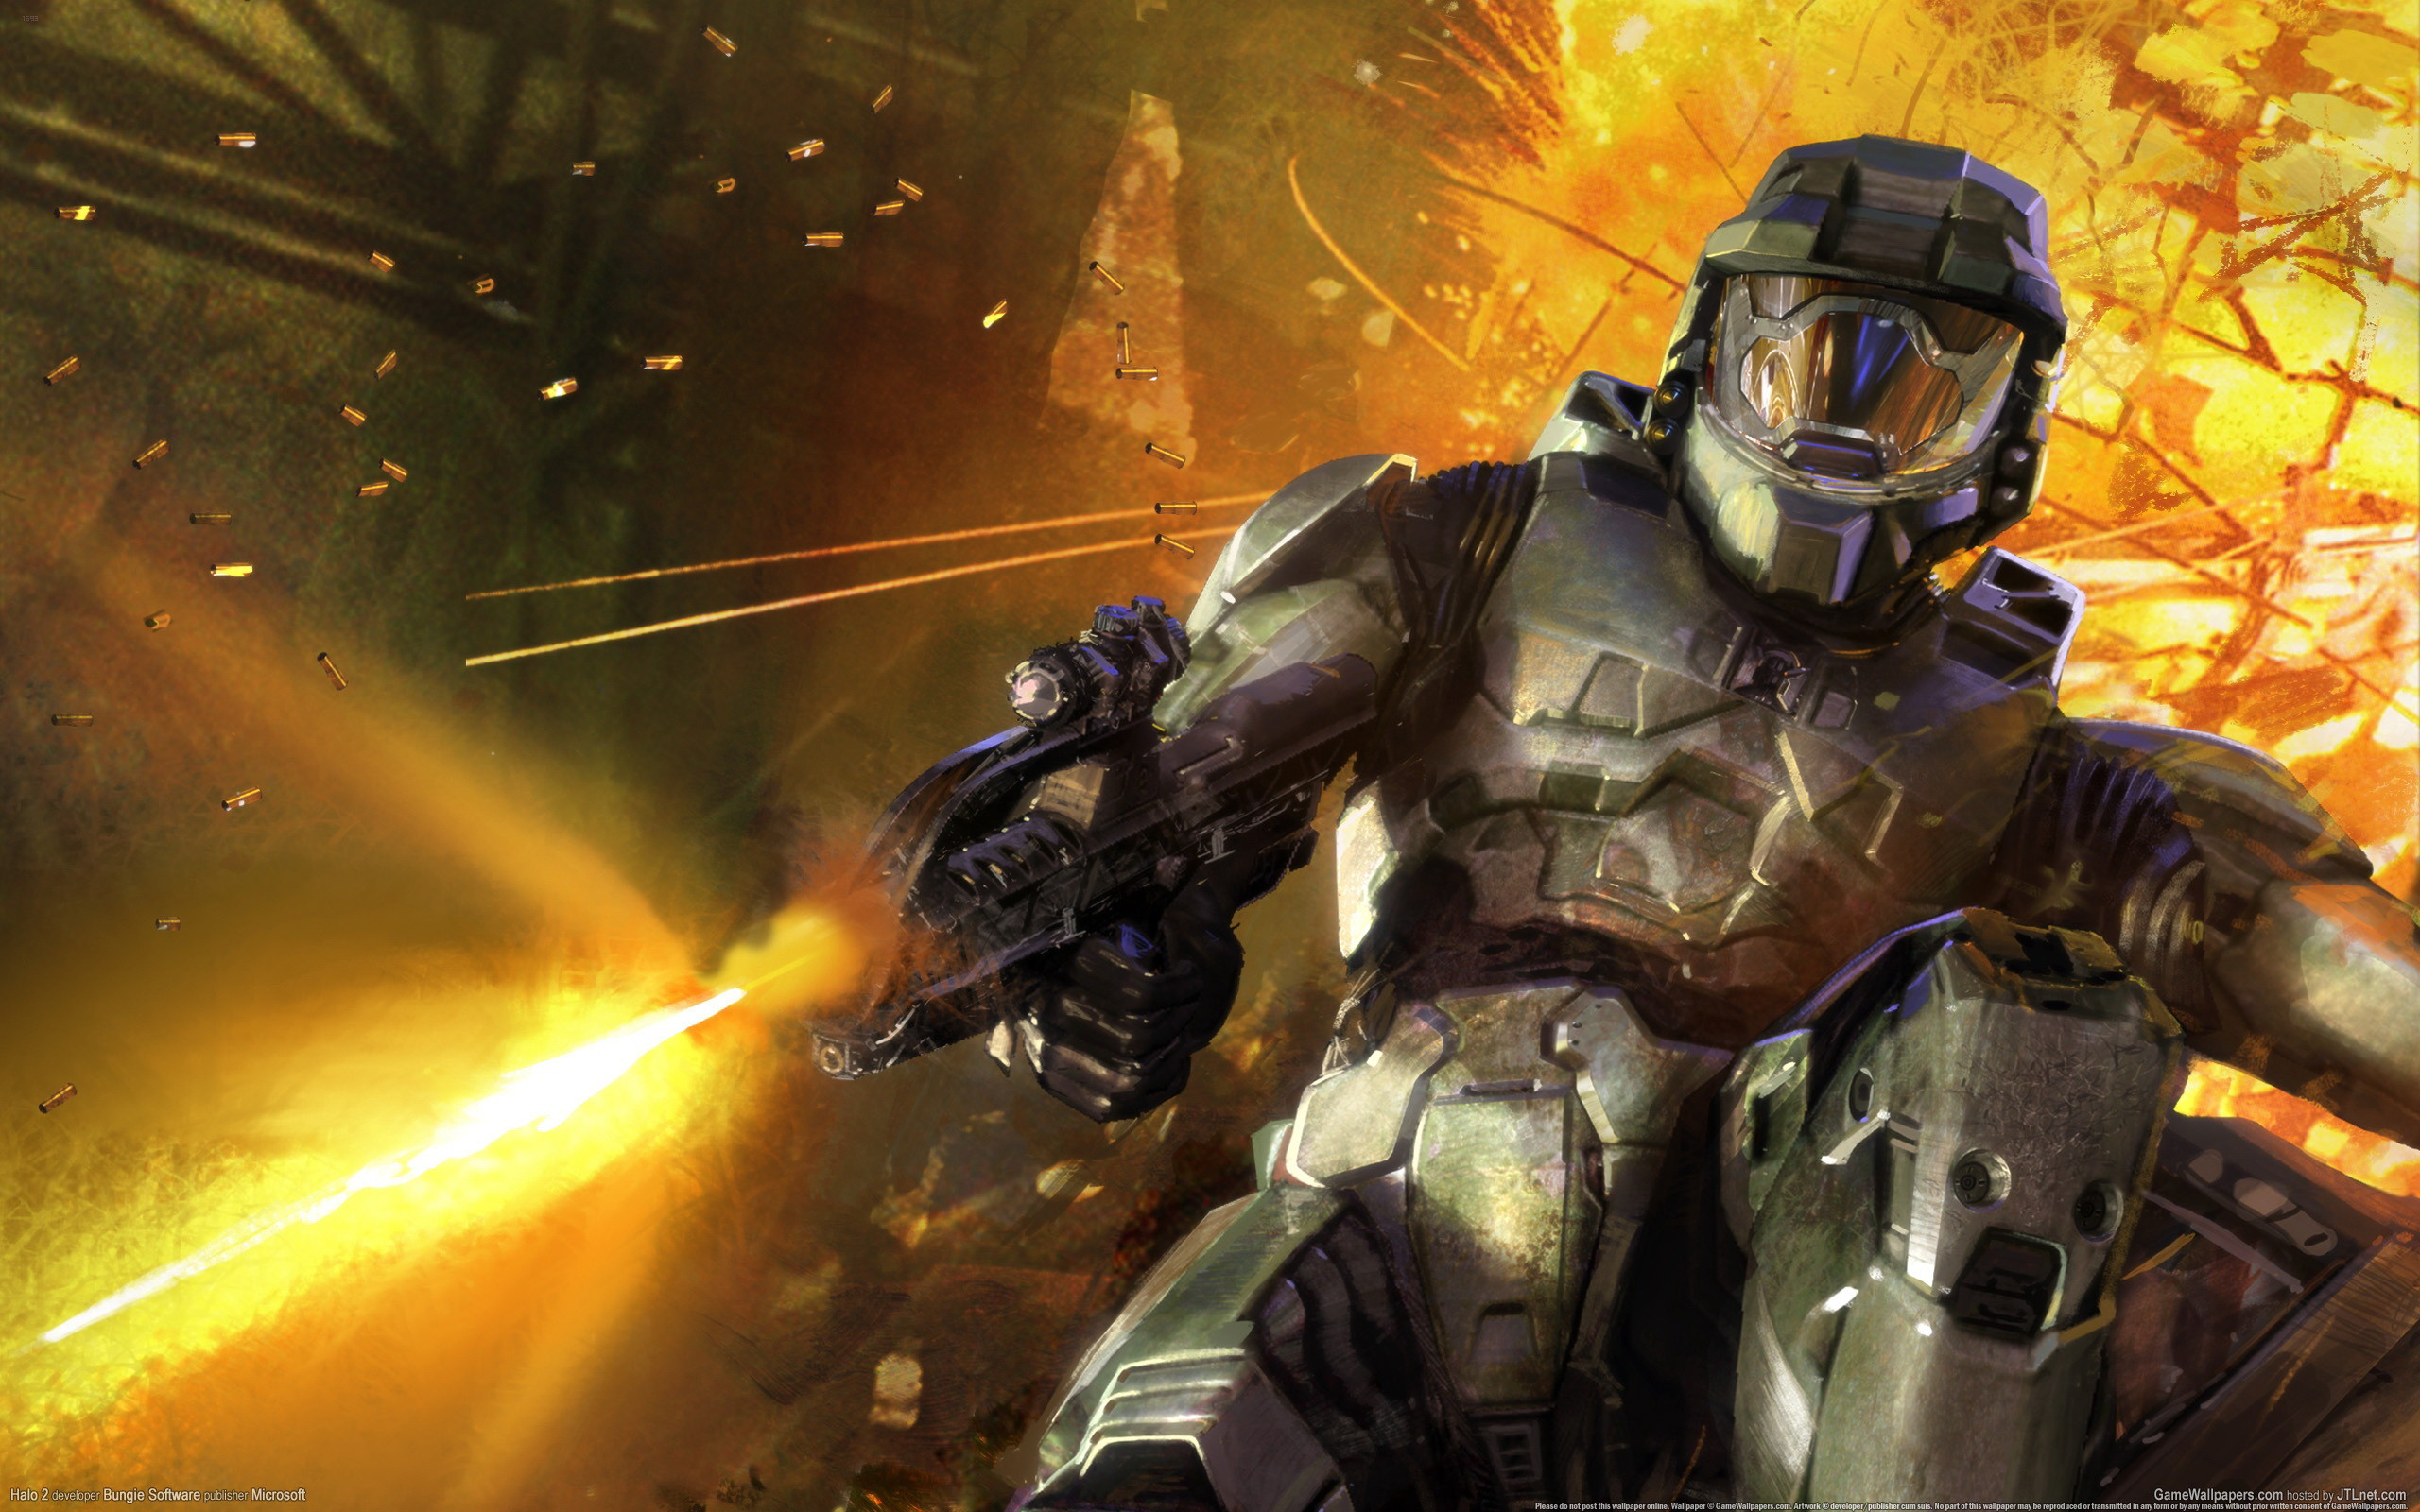 2560x1600 Video Game - Halo 2 Game Fire Gun Master Chief Wallpaper